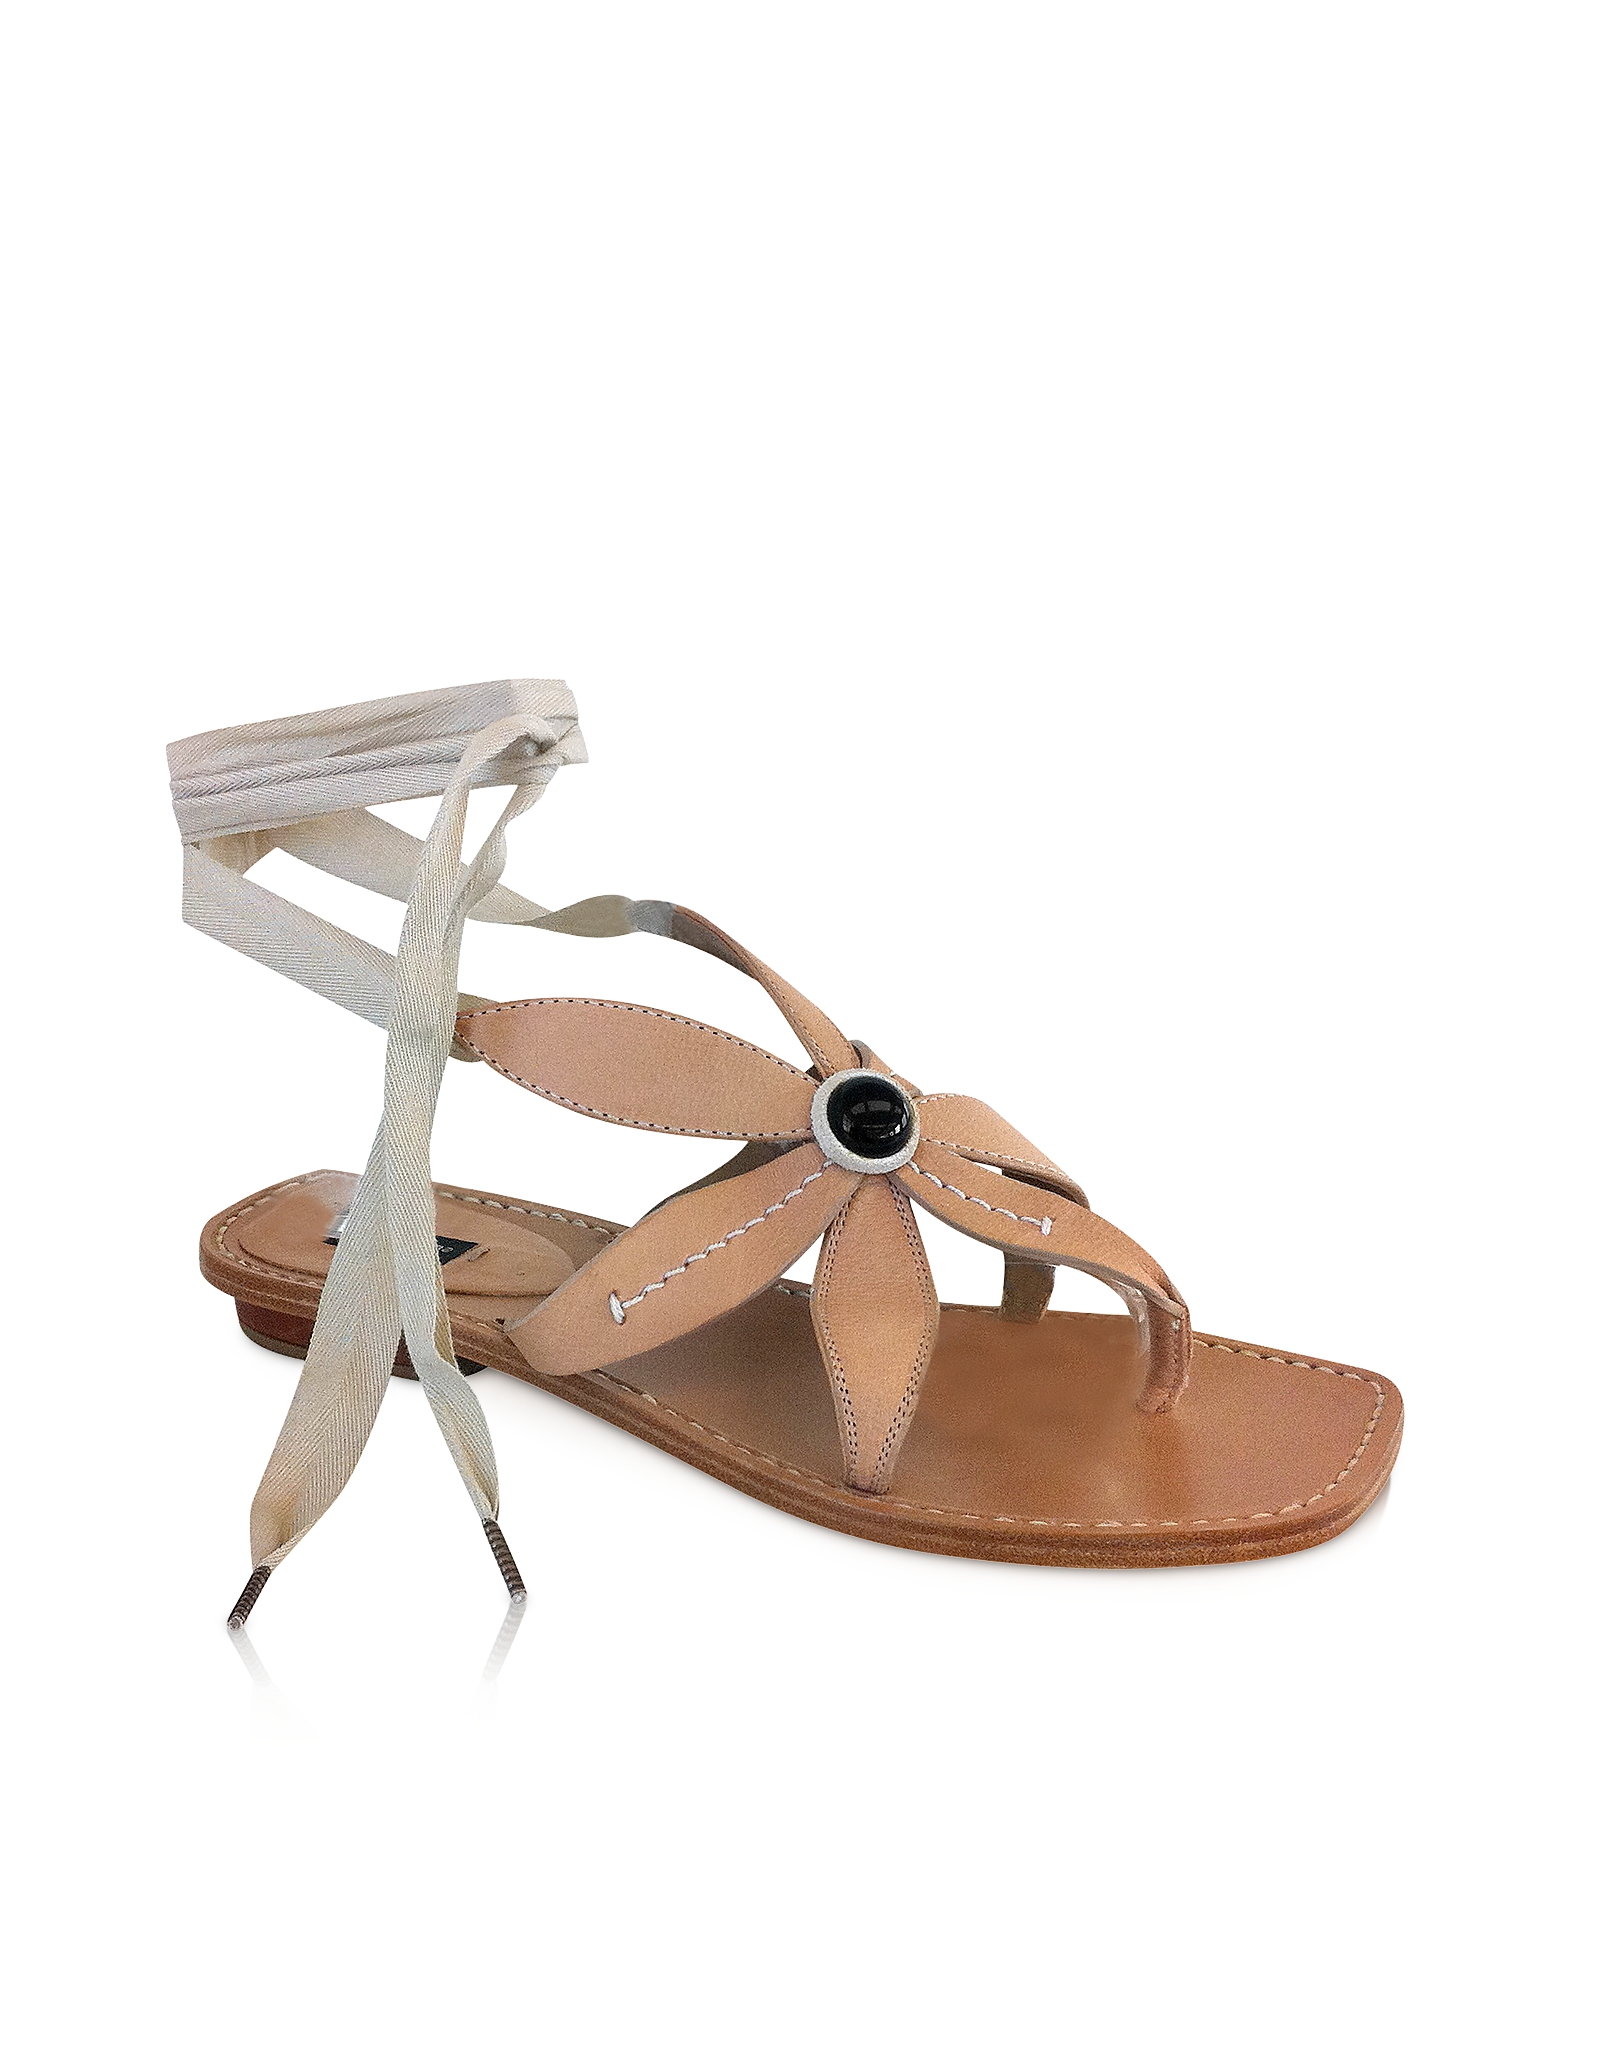 Marc jacobs Powder Pink Flower Sandals in Natural